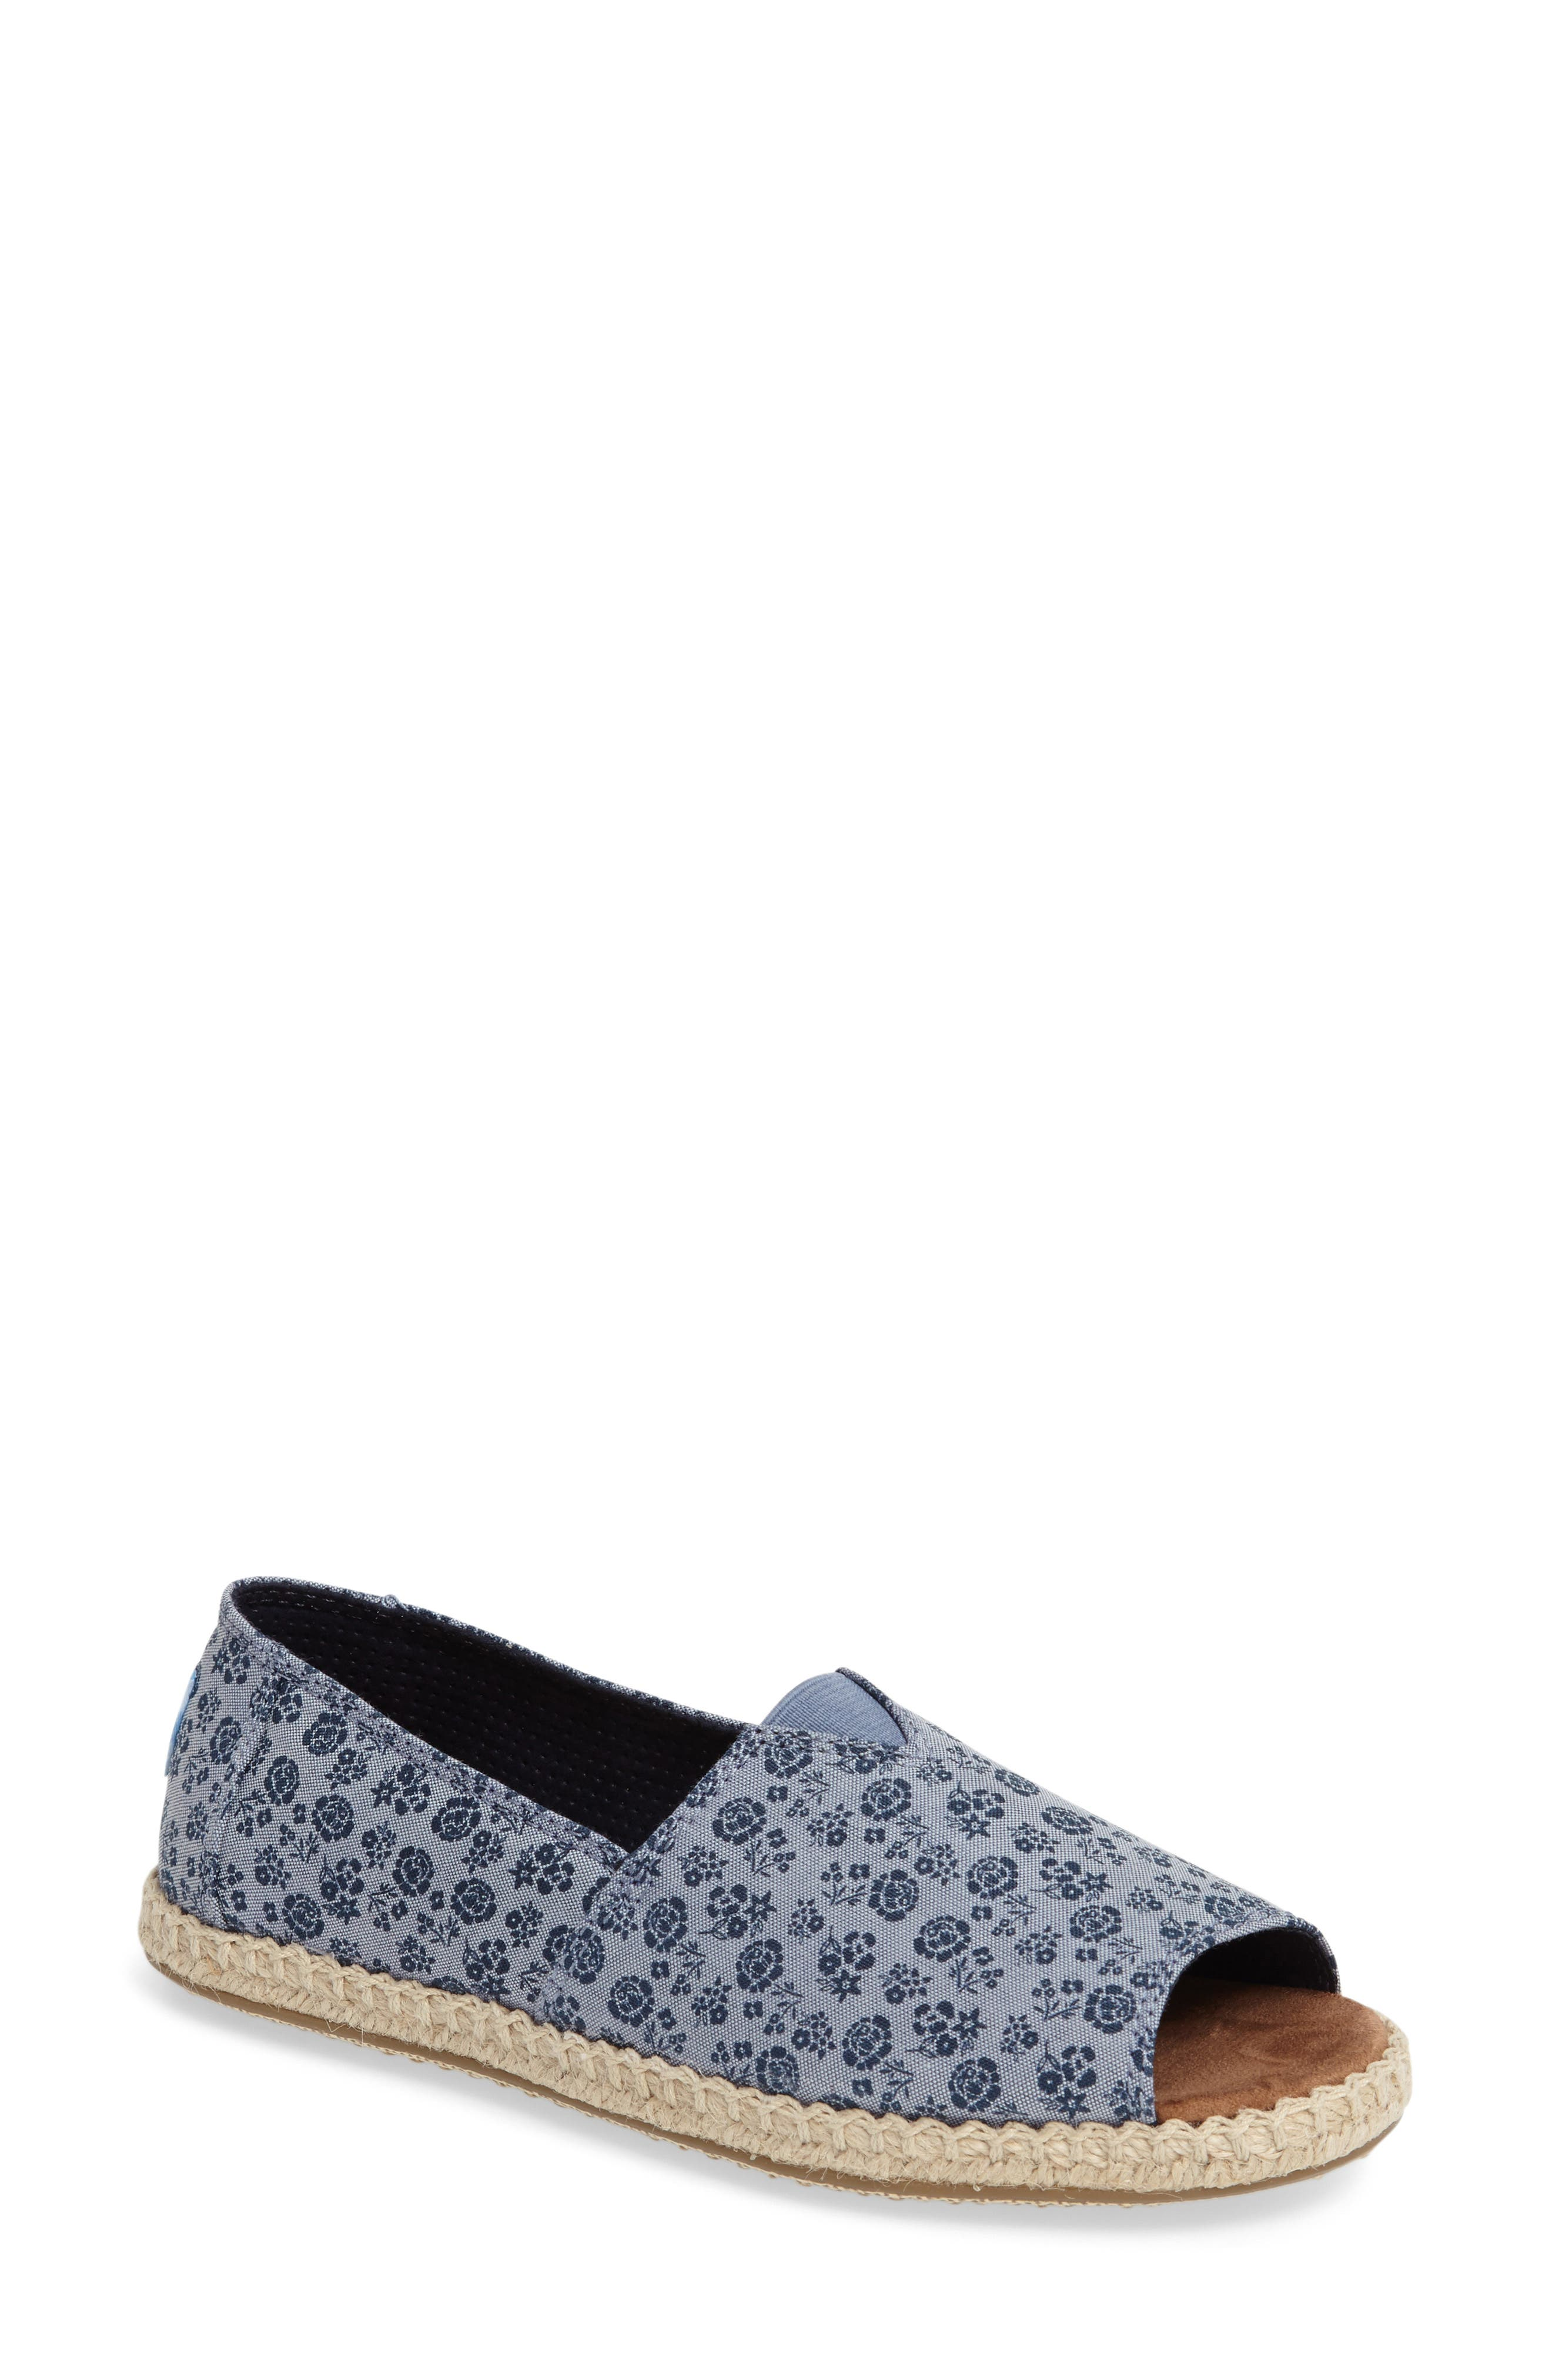 Alternate Image 1 Selected - TOMS Open Toe Espadrille Slip-On (Women)